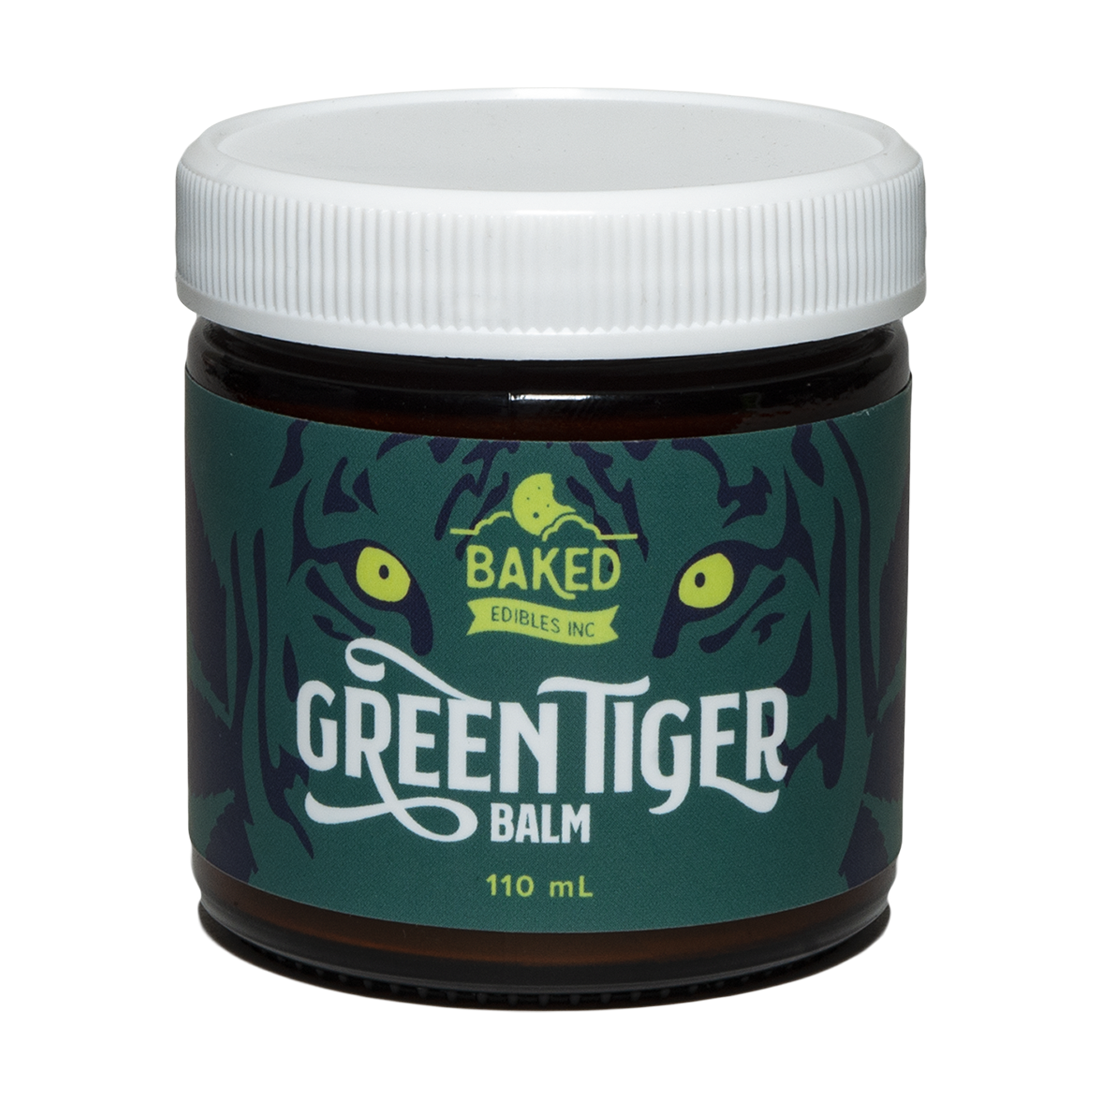 Green Tiger Balm By Baked Edibles 01306